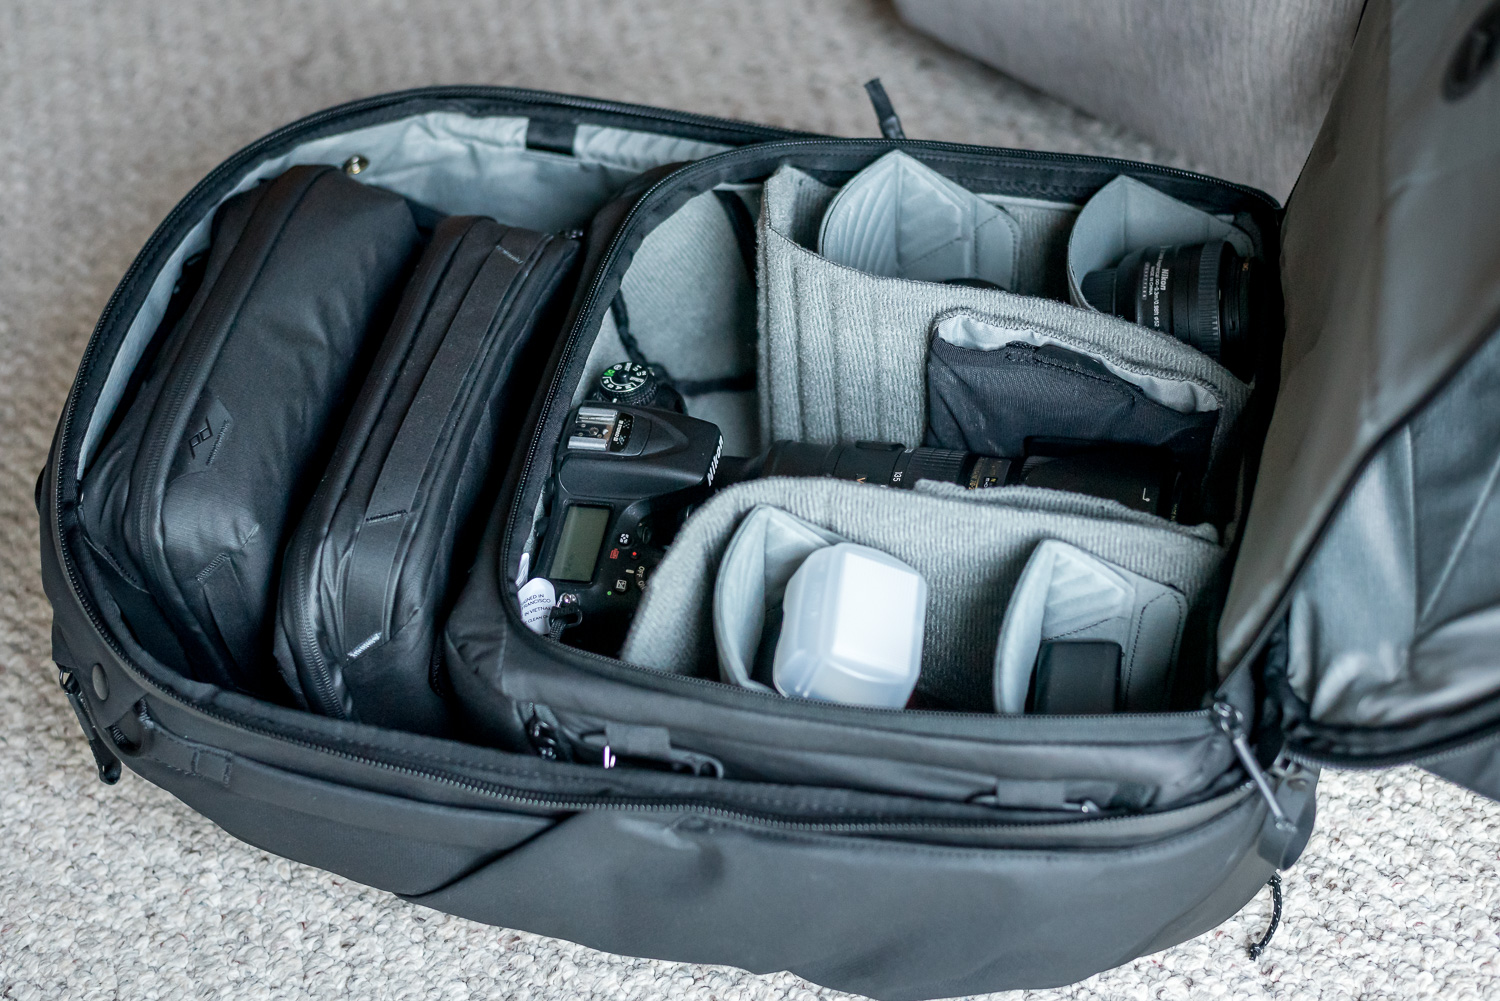 Travel Backpack filled with camera gear.